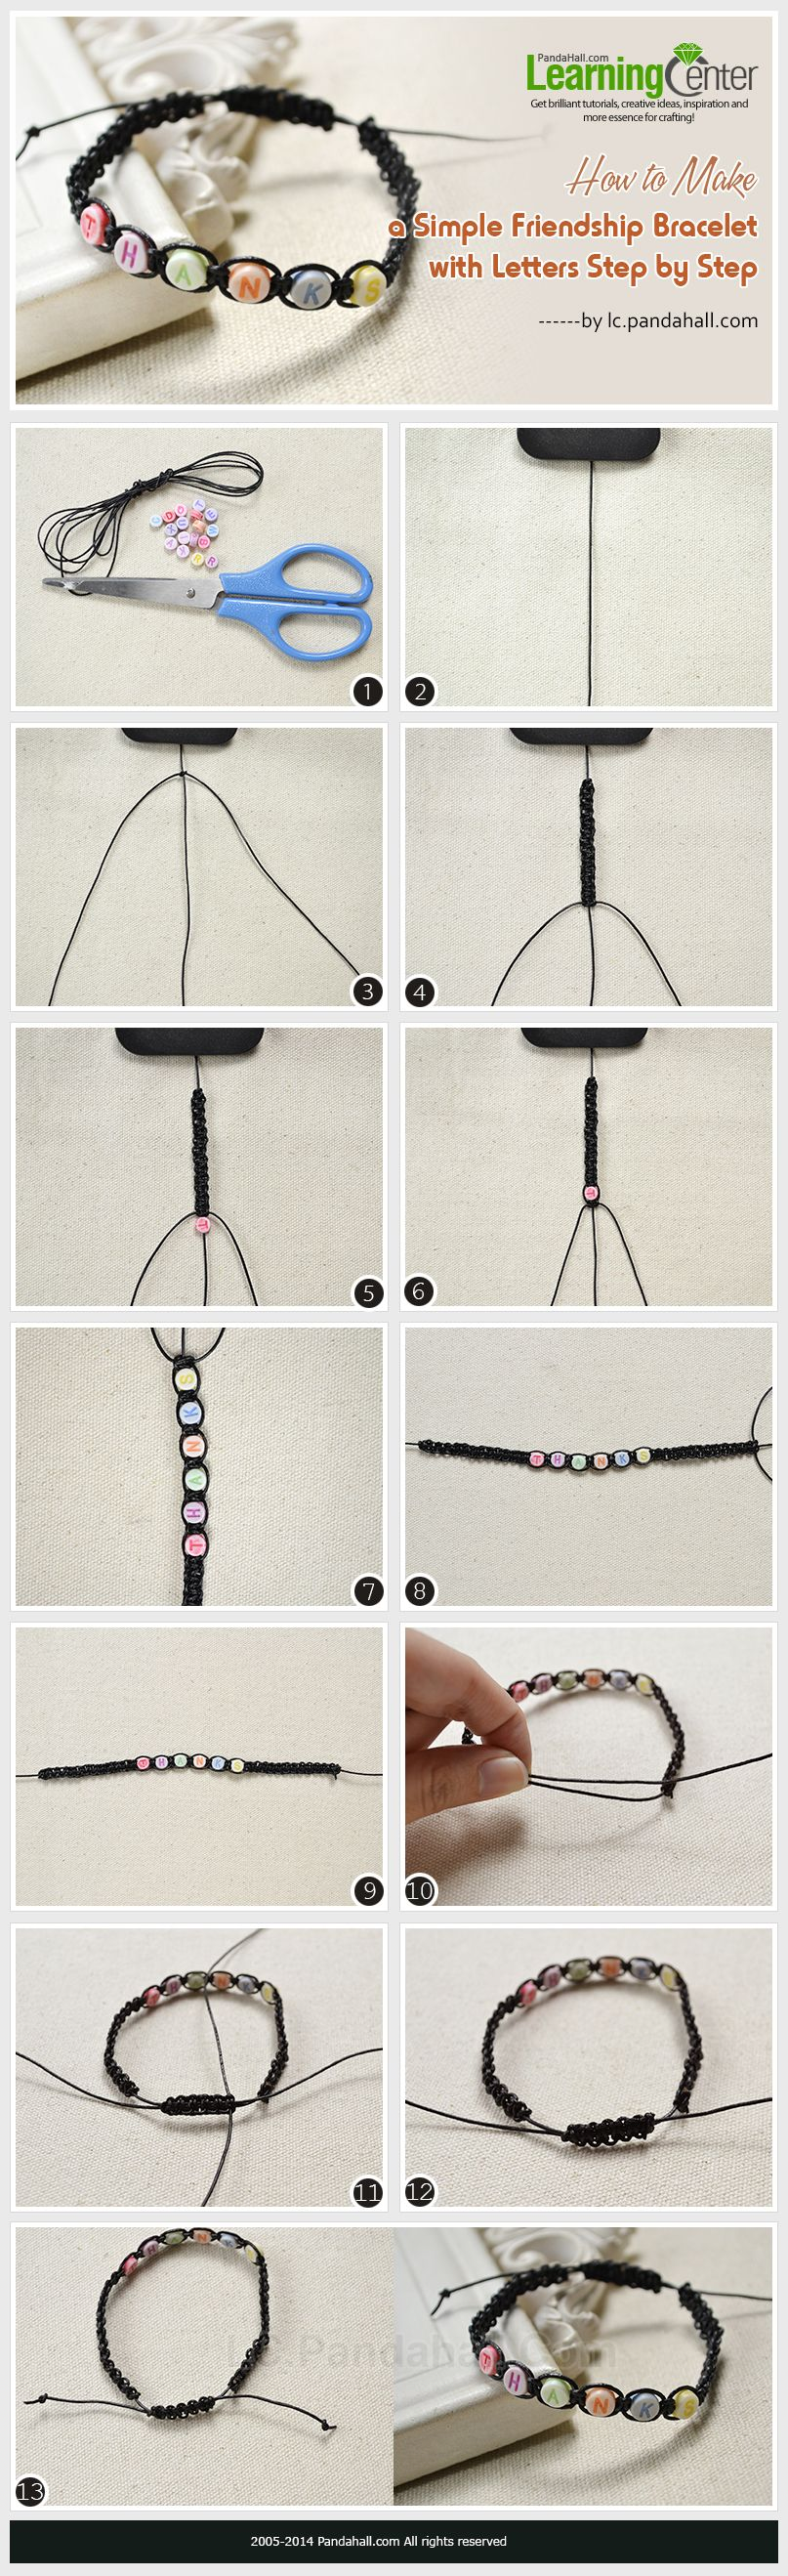 How to make friendship bracelets with beads step by